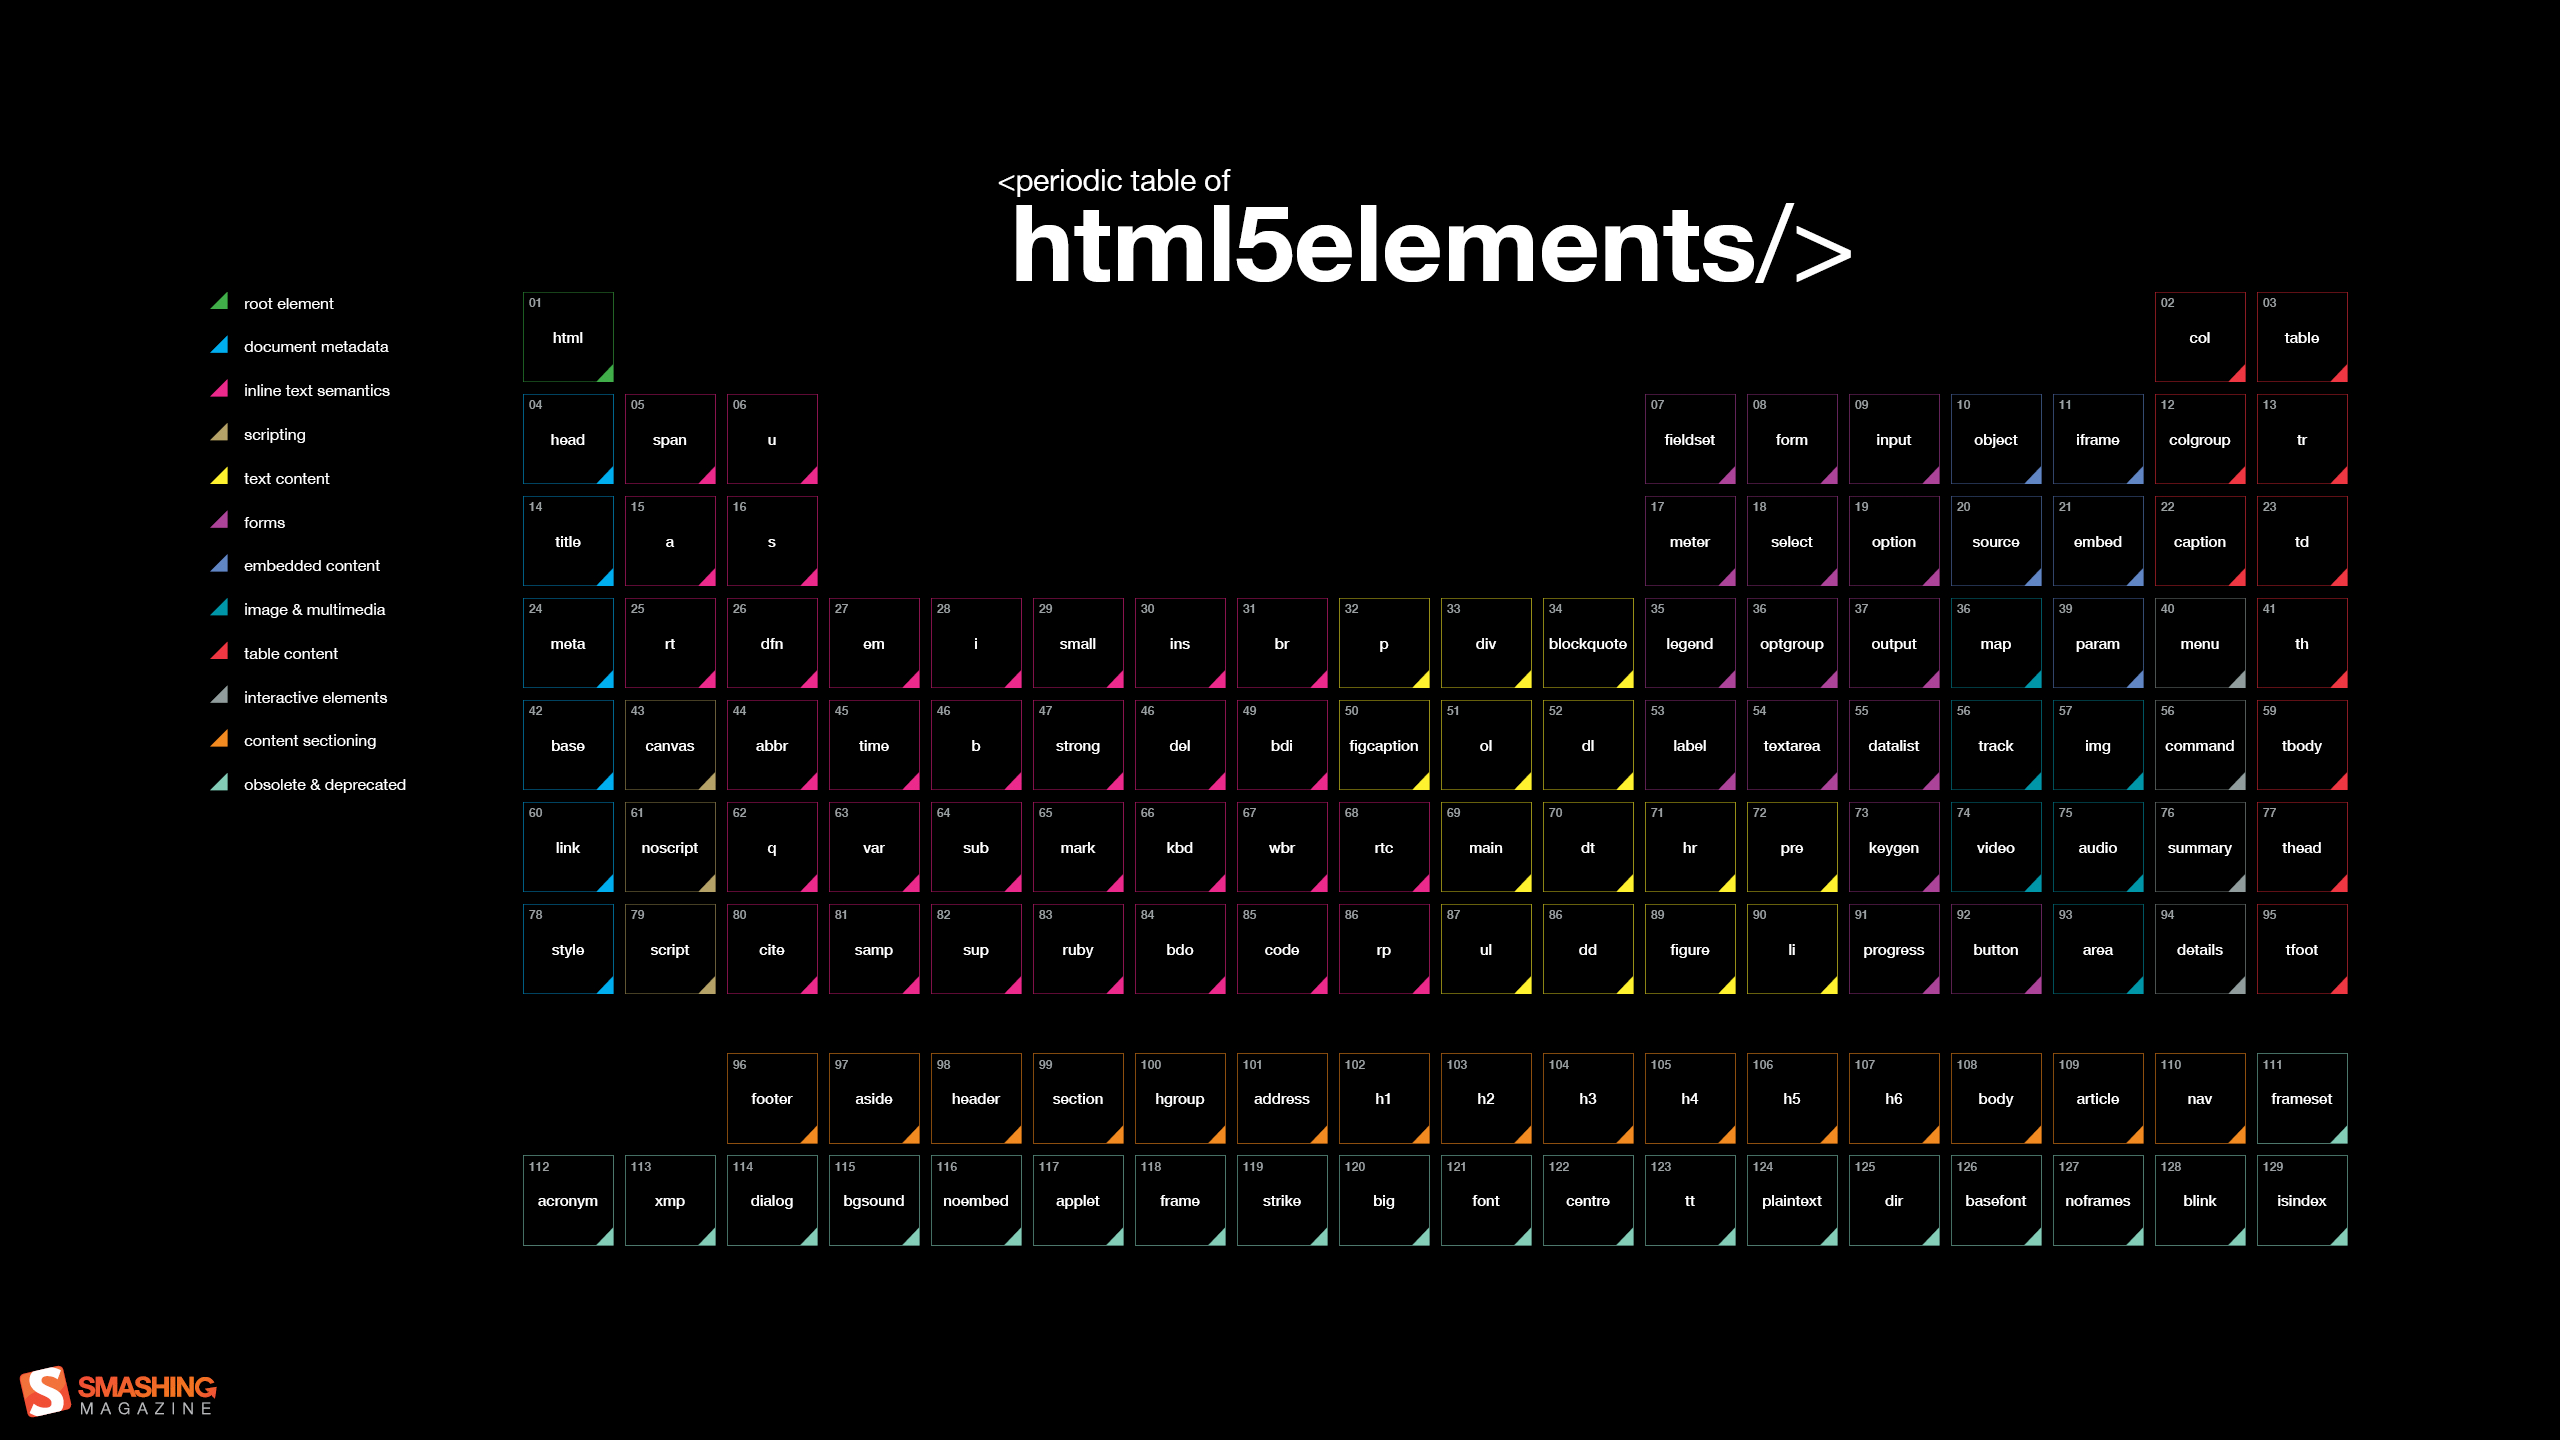 hight resolution of html css code wallpaper web development black backgrounds periodic table diagram